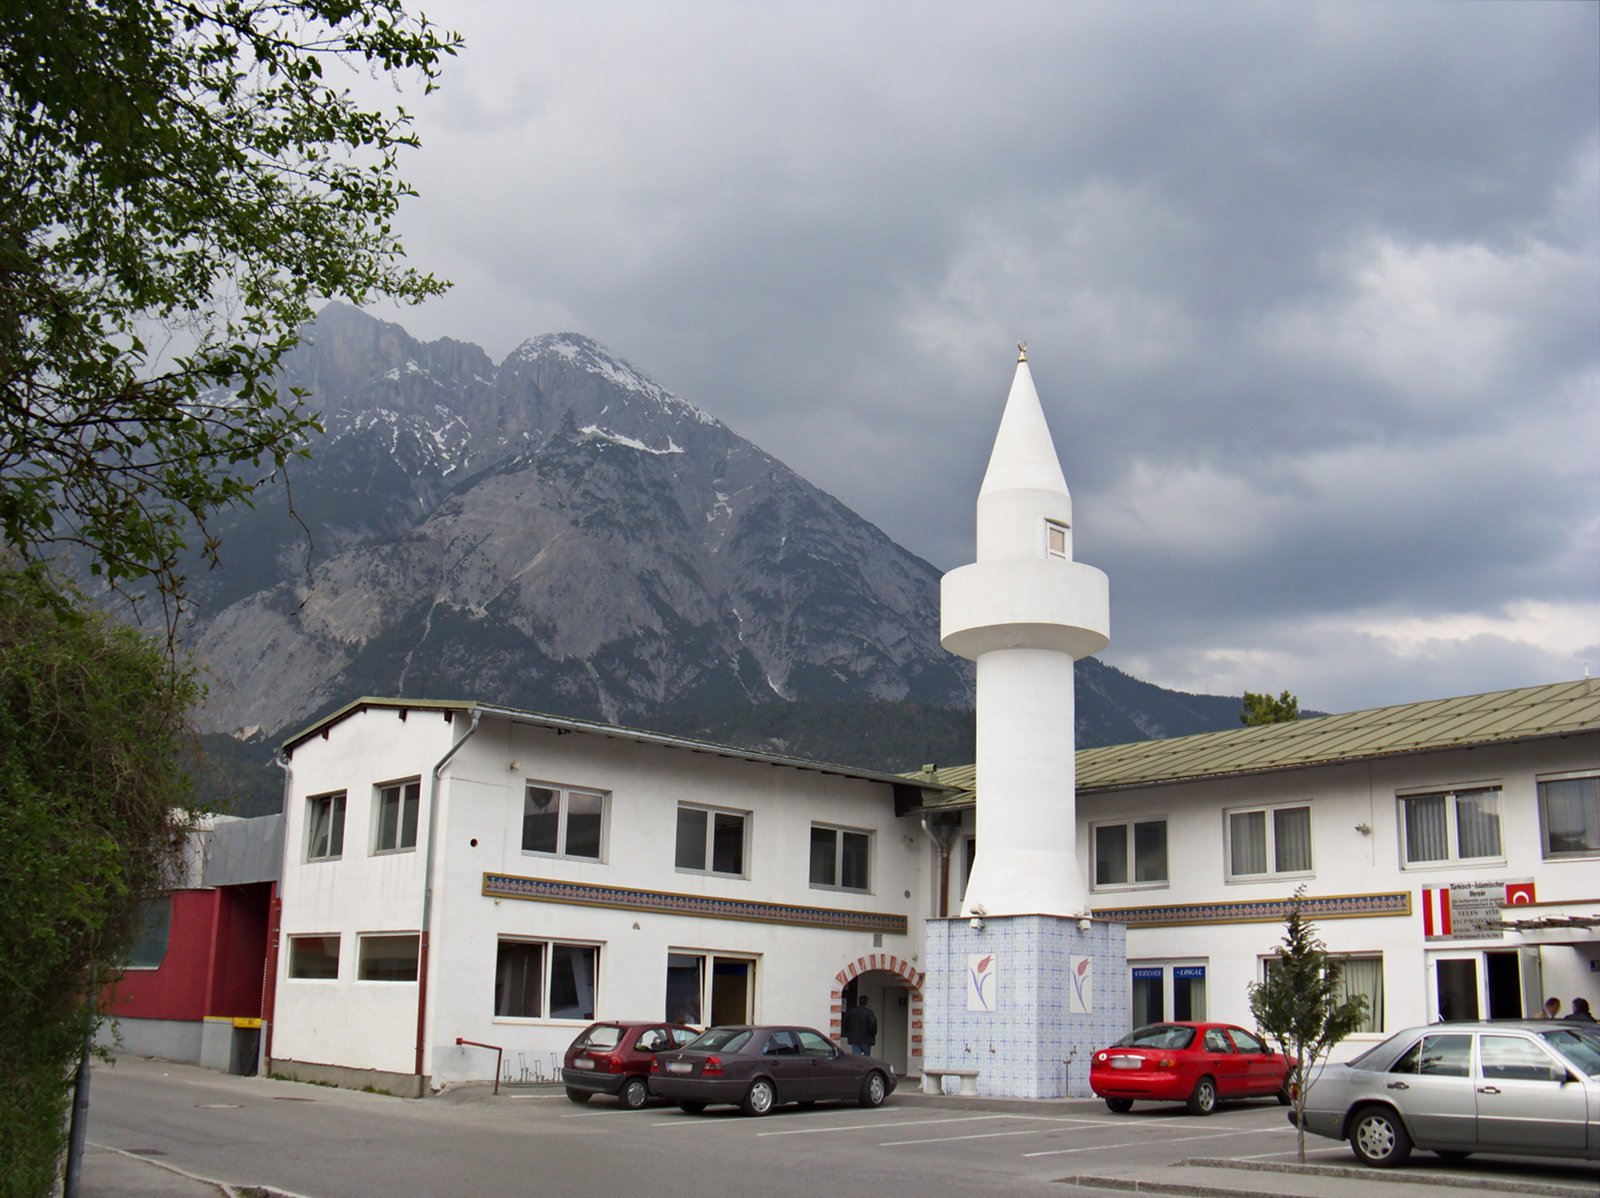 Austria's Law on Islam to be Overhauled Amid Growing Distrust of the Muslim Community